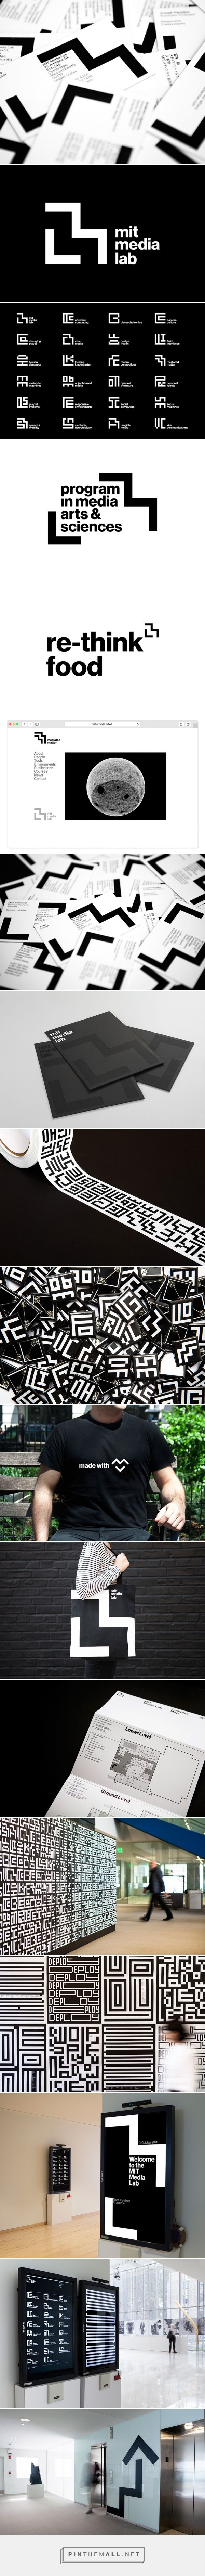 the new MIT media lab identity by pentagram - created via http://pinthemall.net